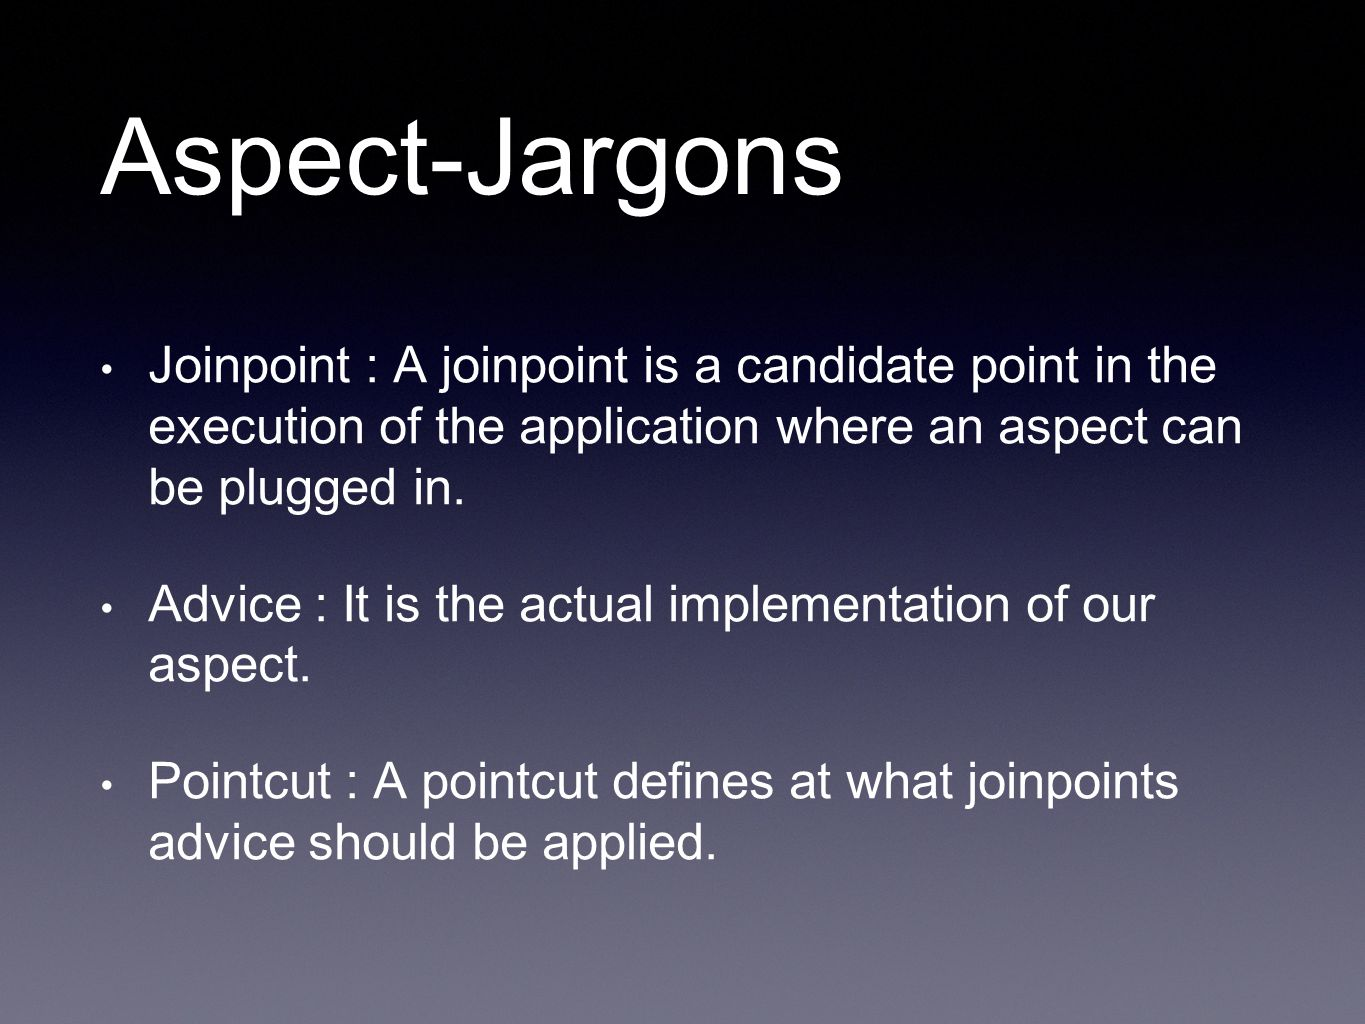 Aspect-Jargons Joinpoint : A joinpoint is a candidate point in the execution of the application where an aspect can be plugged in.